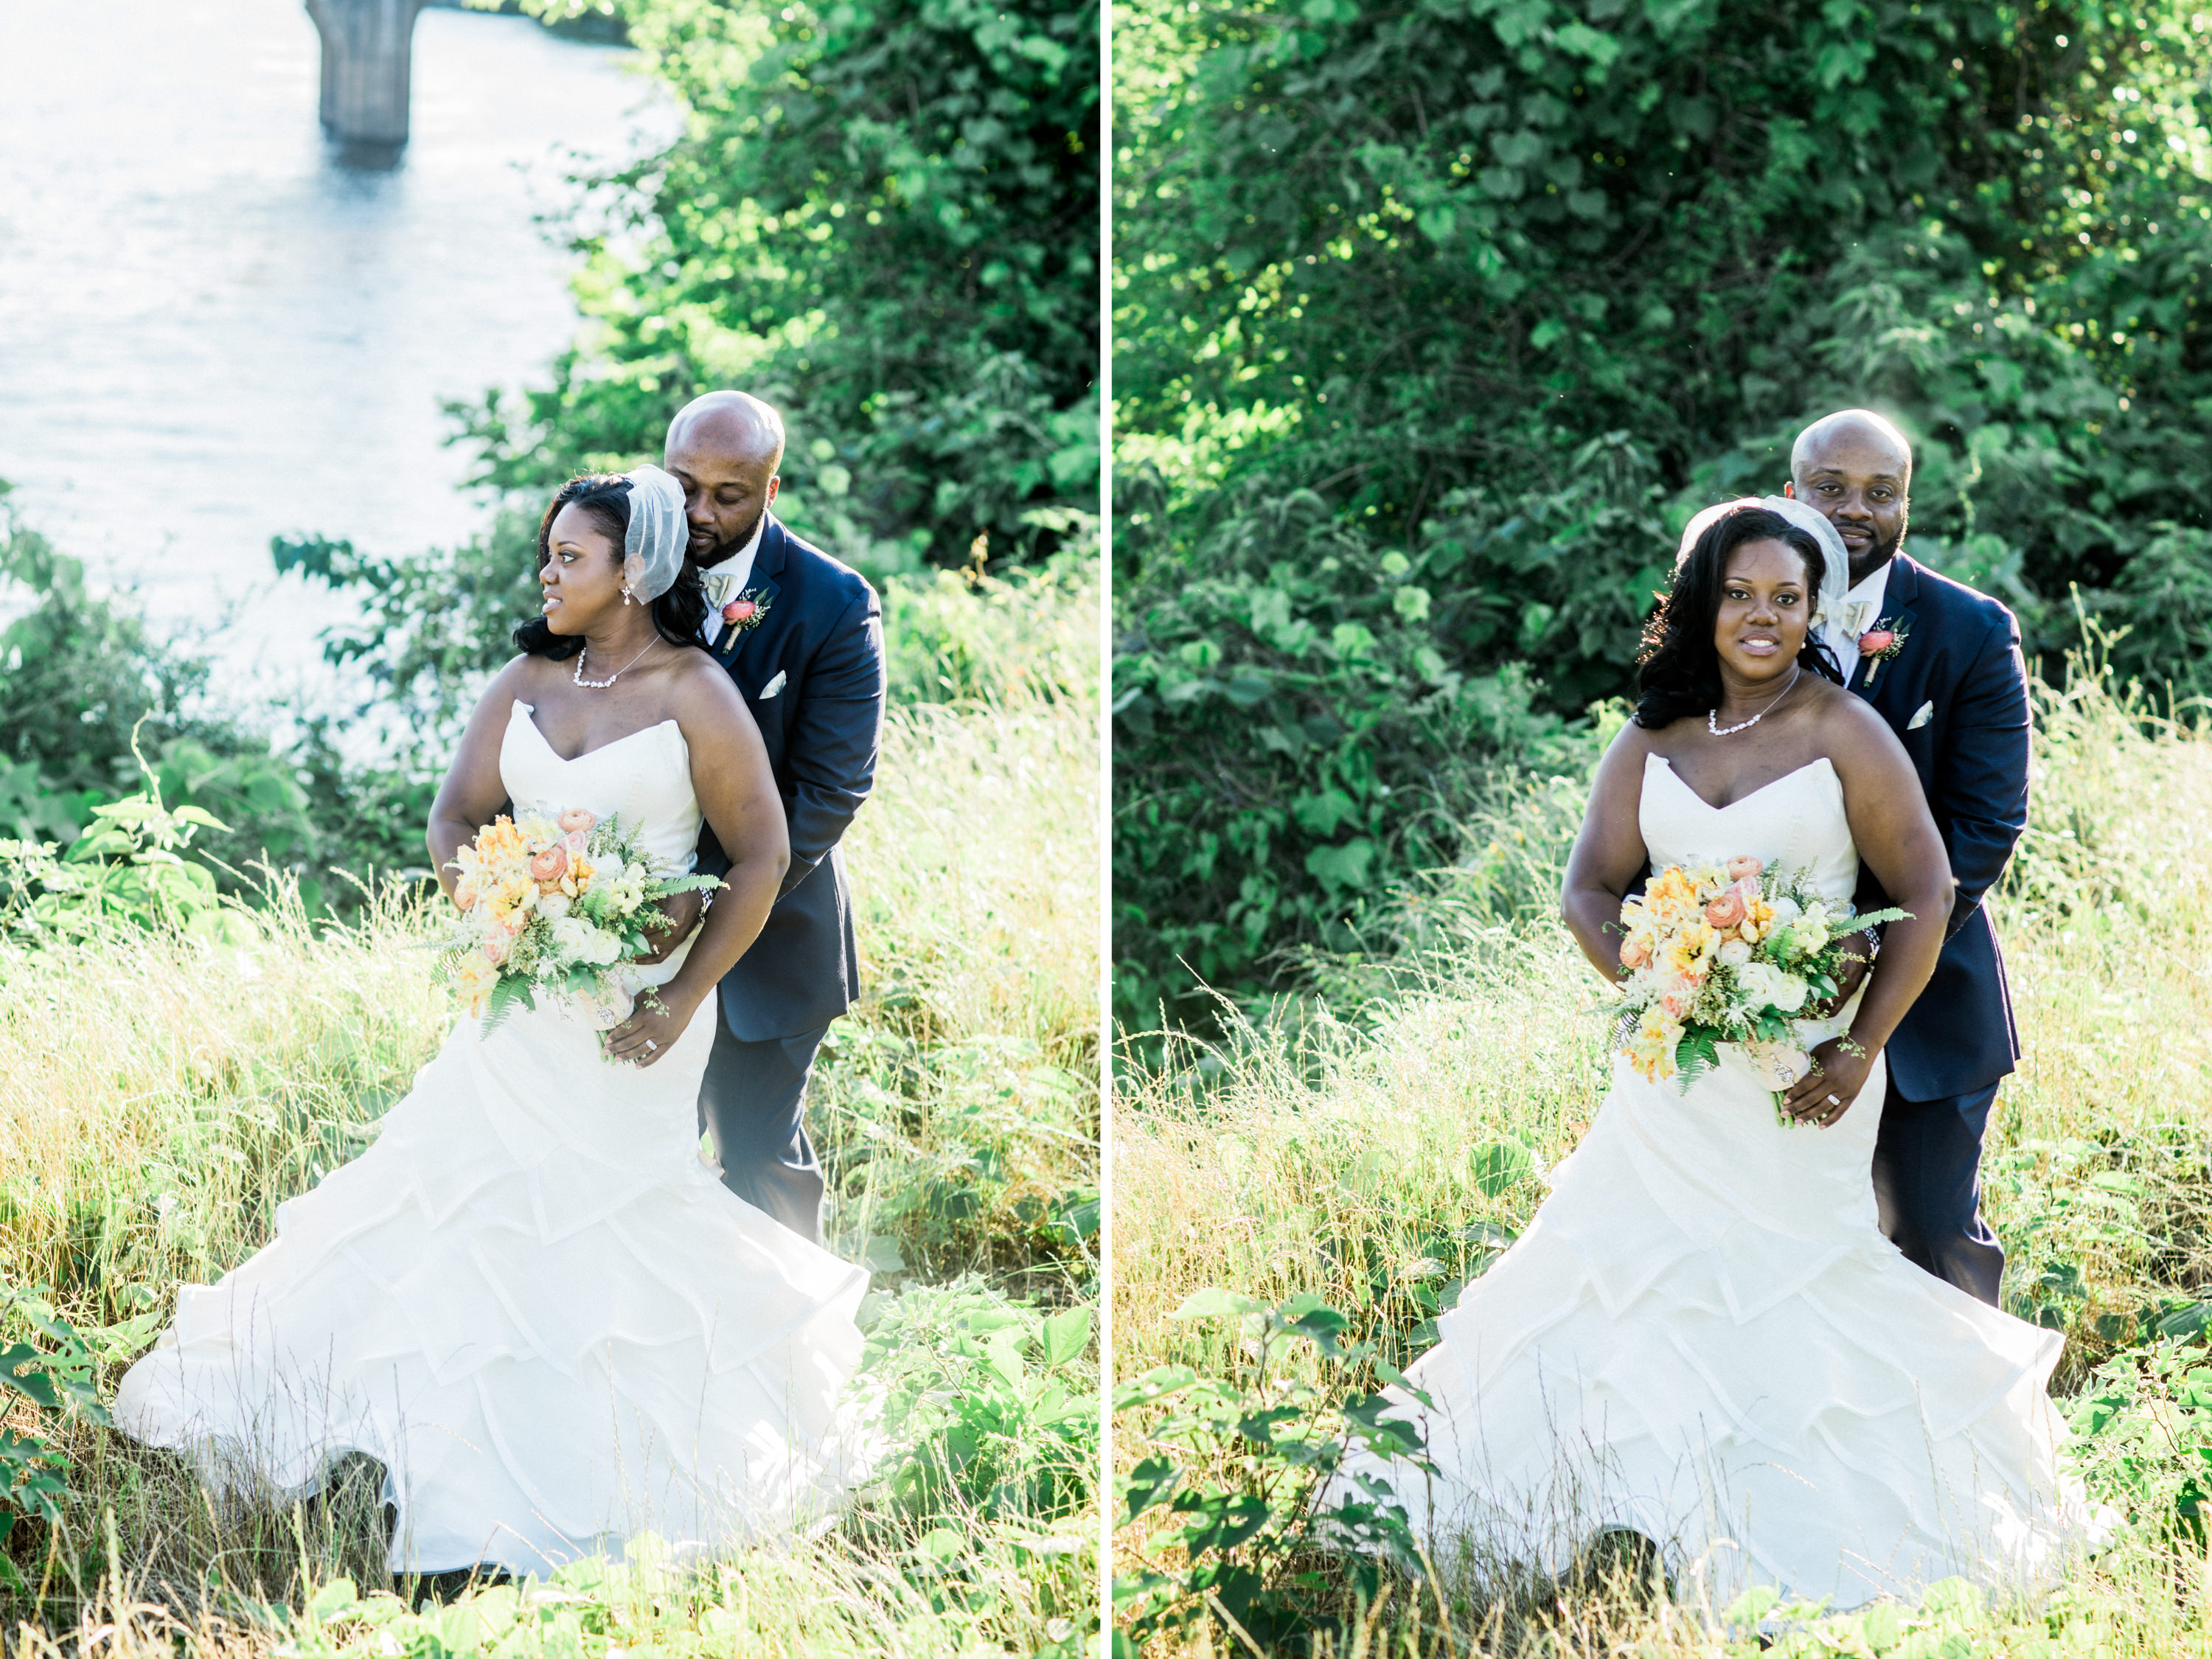 FLOWERS_WEDDING_SELMA_ALABAMA_WEDDING_PHOTOGRAPHY_97